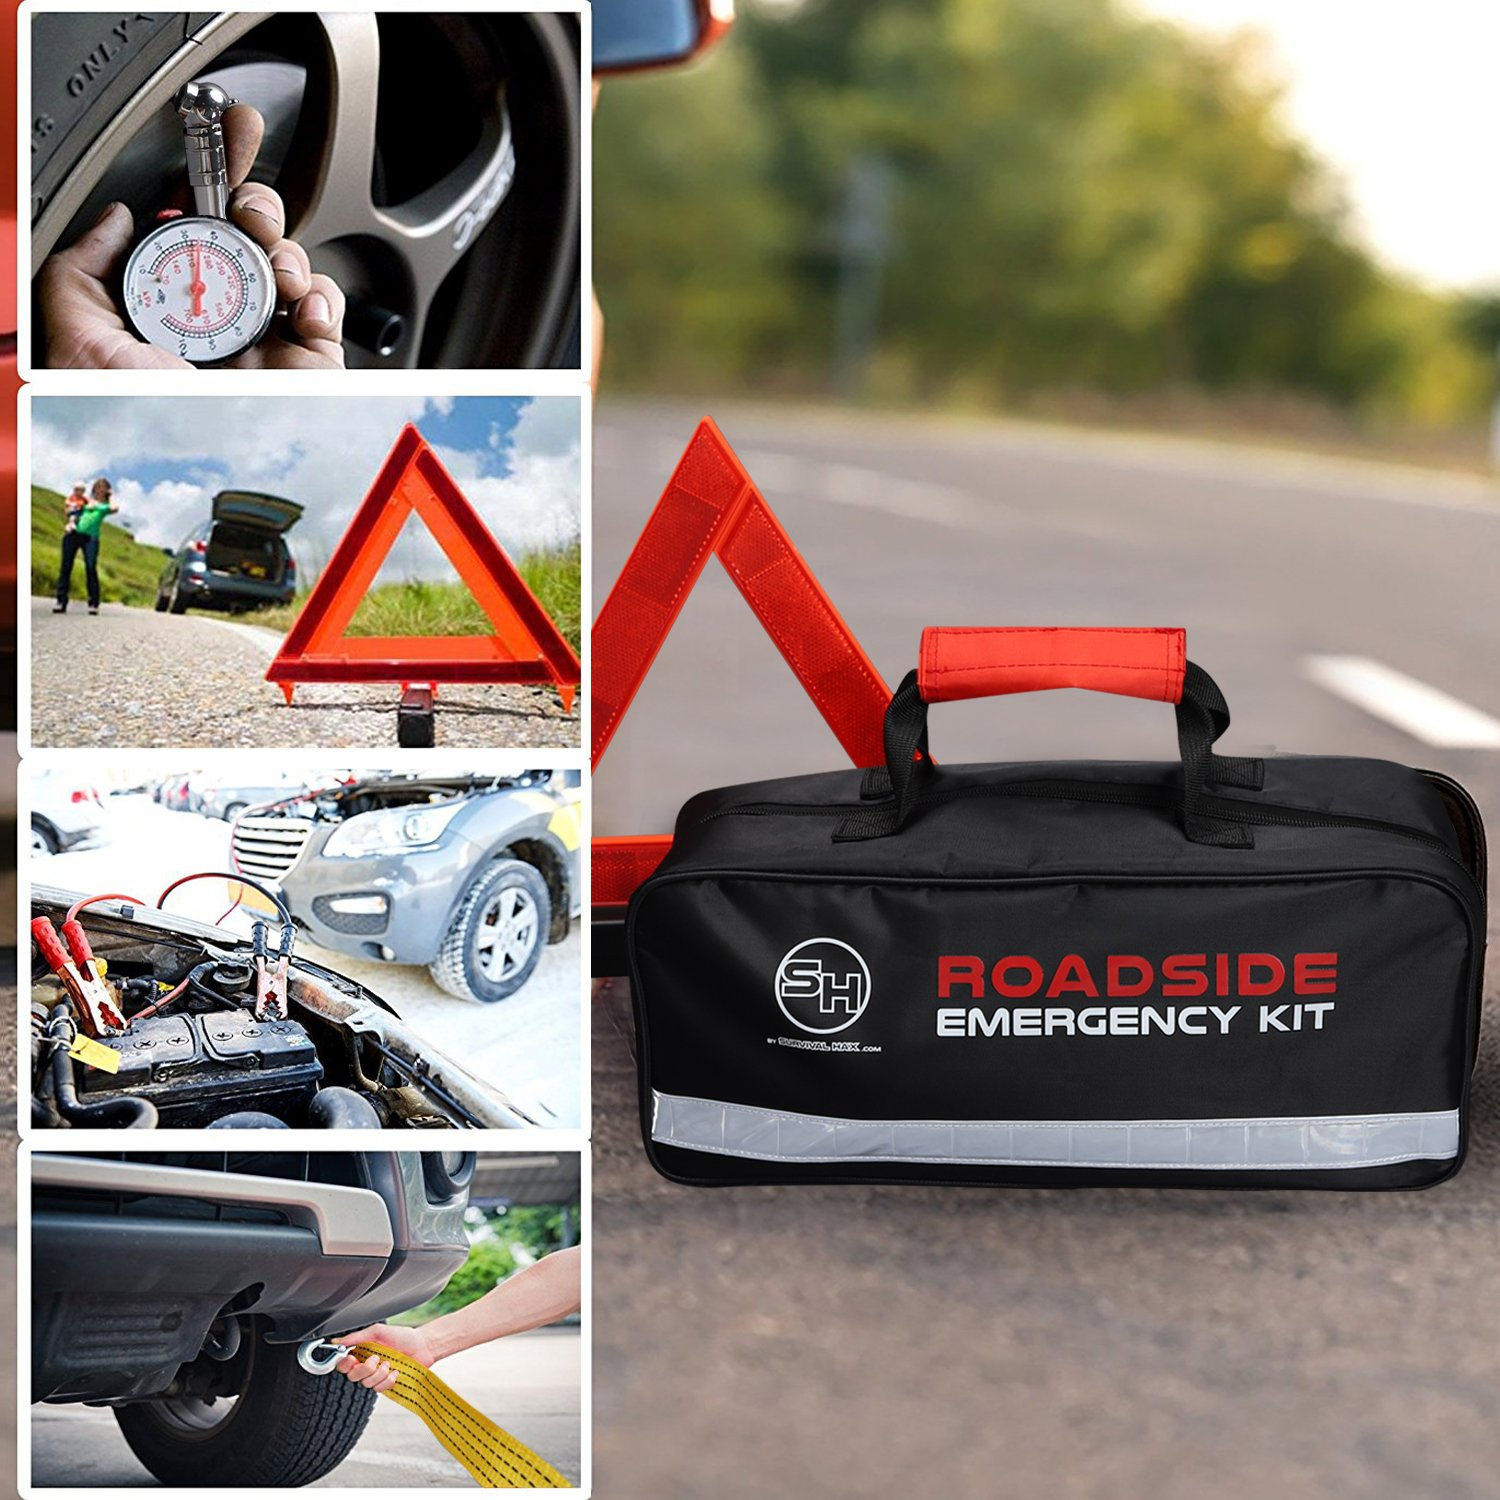 Roadside Emergency Kit with Jumper Cables and First Aid Supplies